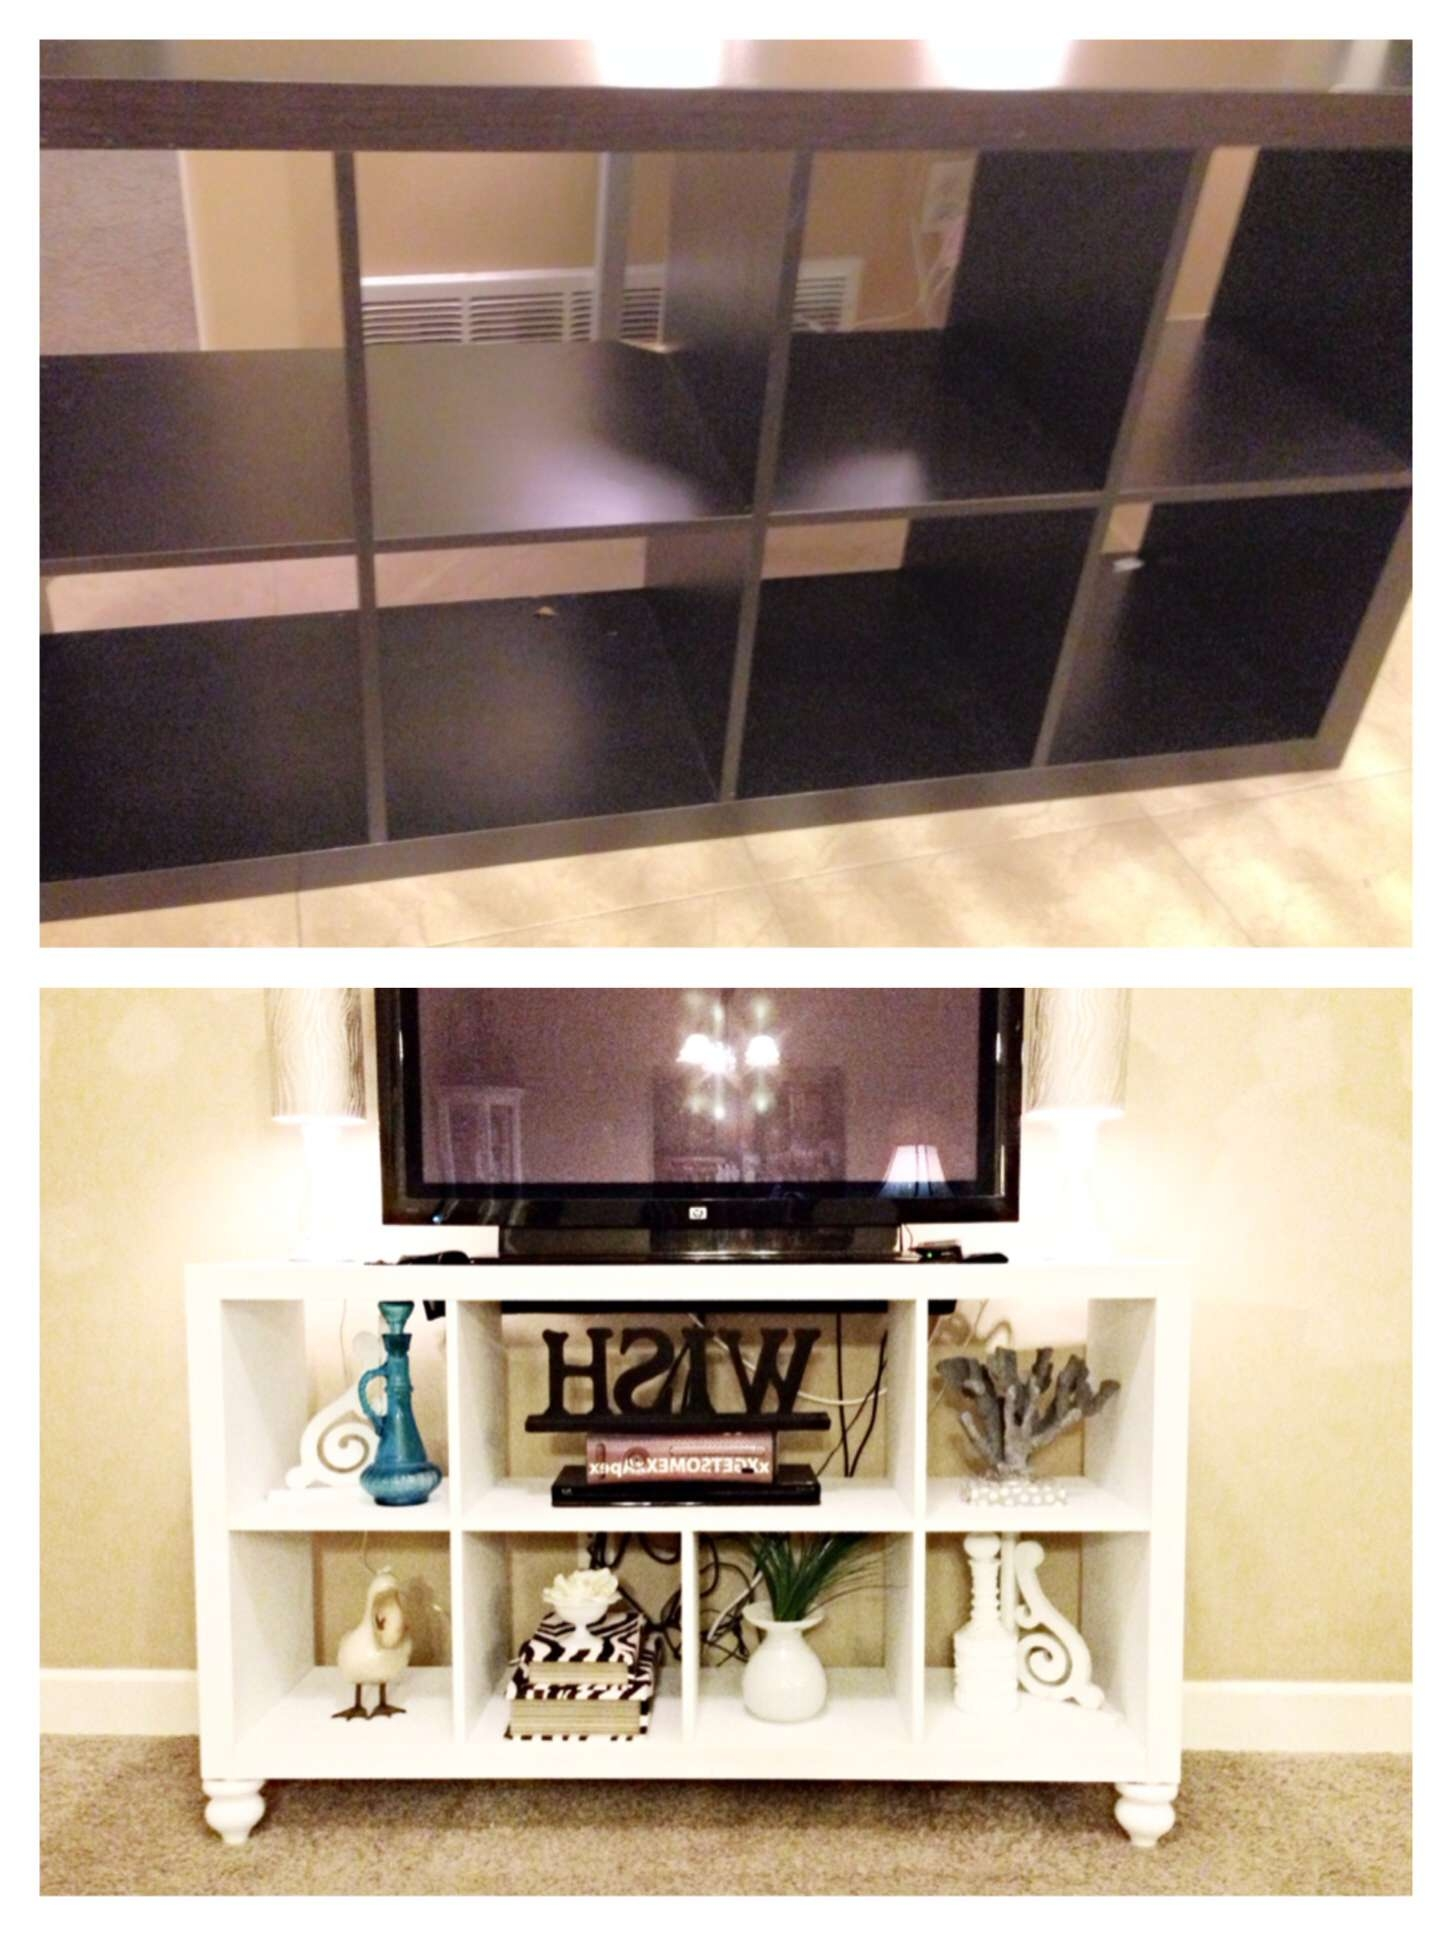 Best Solutions Of Diy Ikea Bookshelf To Tv Stand I Ll Do It Myself With Tv Stands And Bookshelf (View 1 of 15)